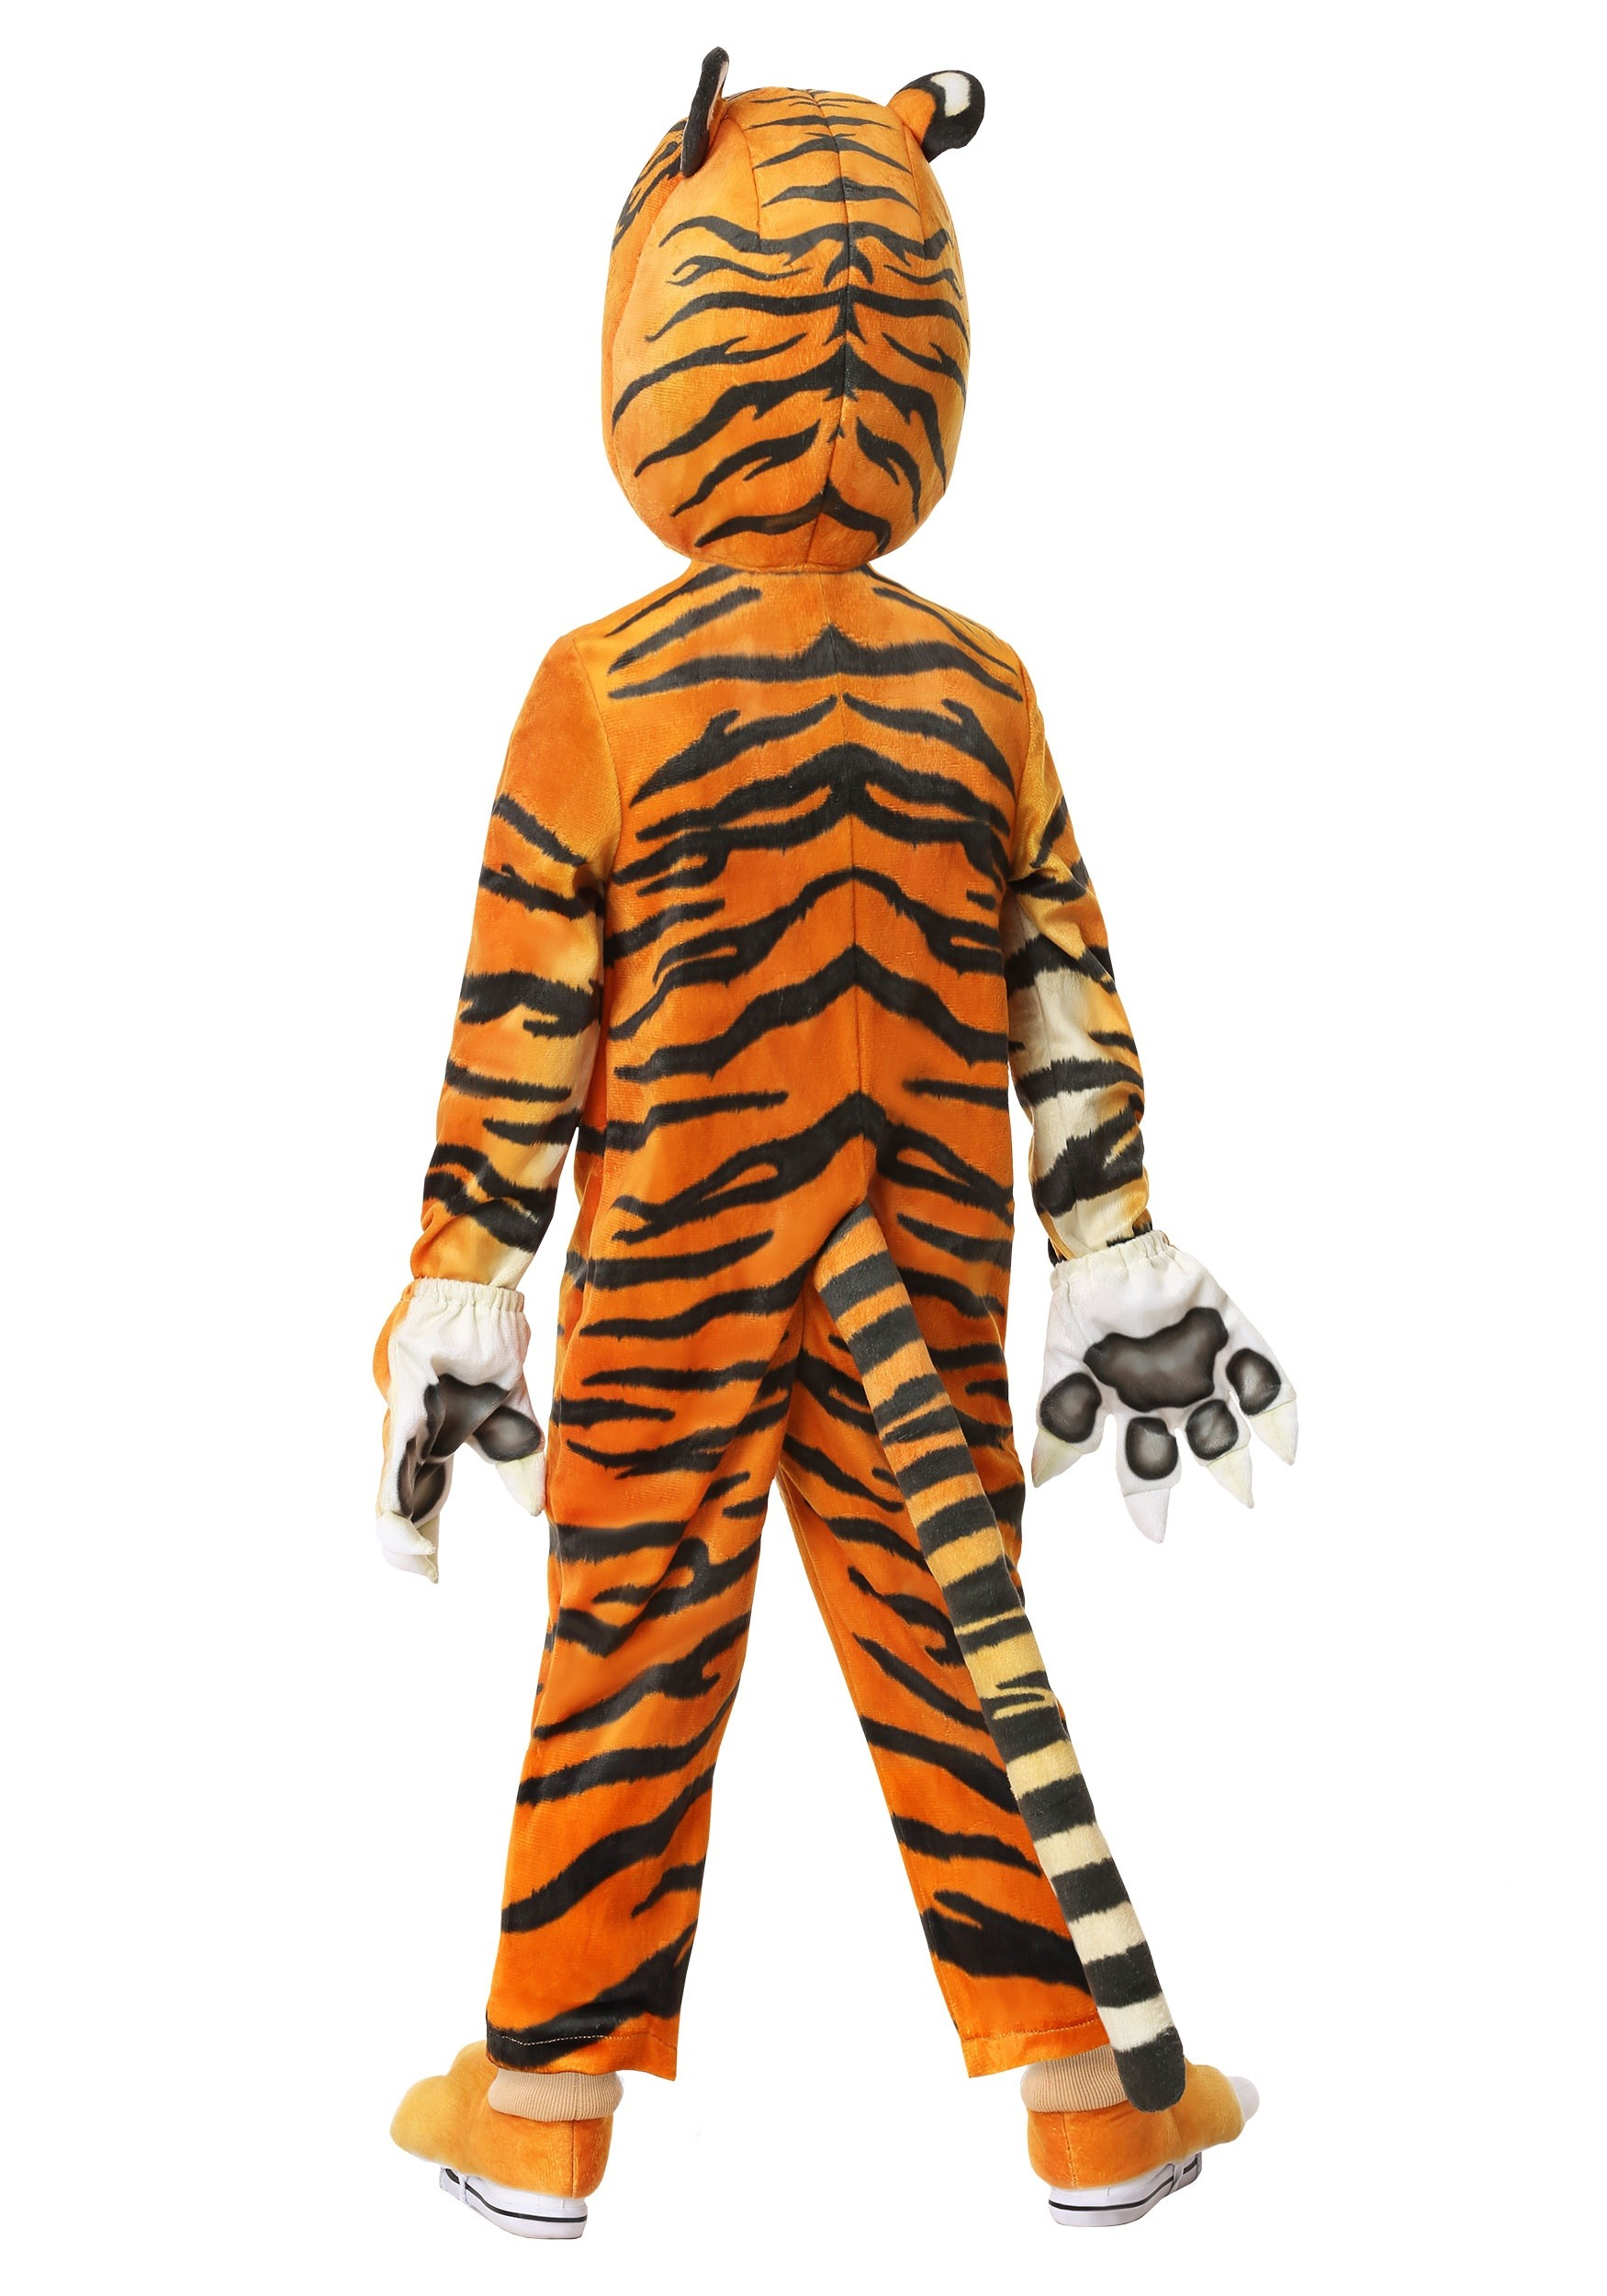 Realistic Tiger Toddler CostumeRealistic Tiger Costume